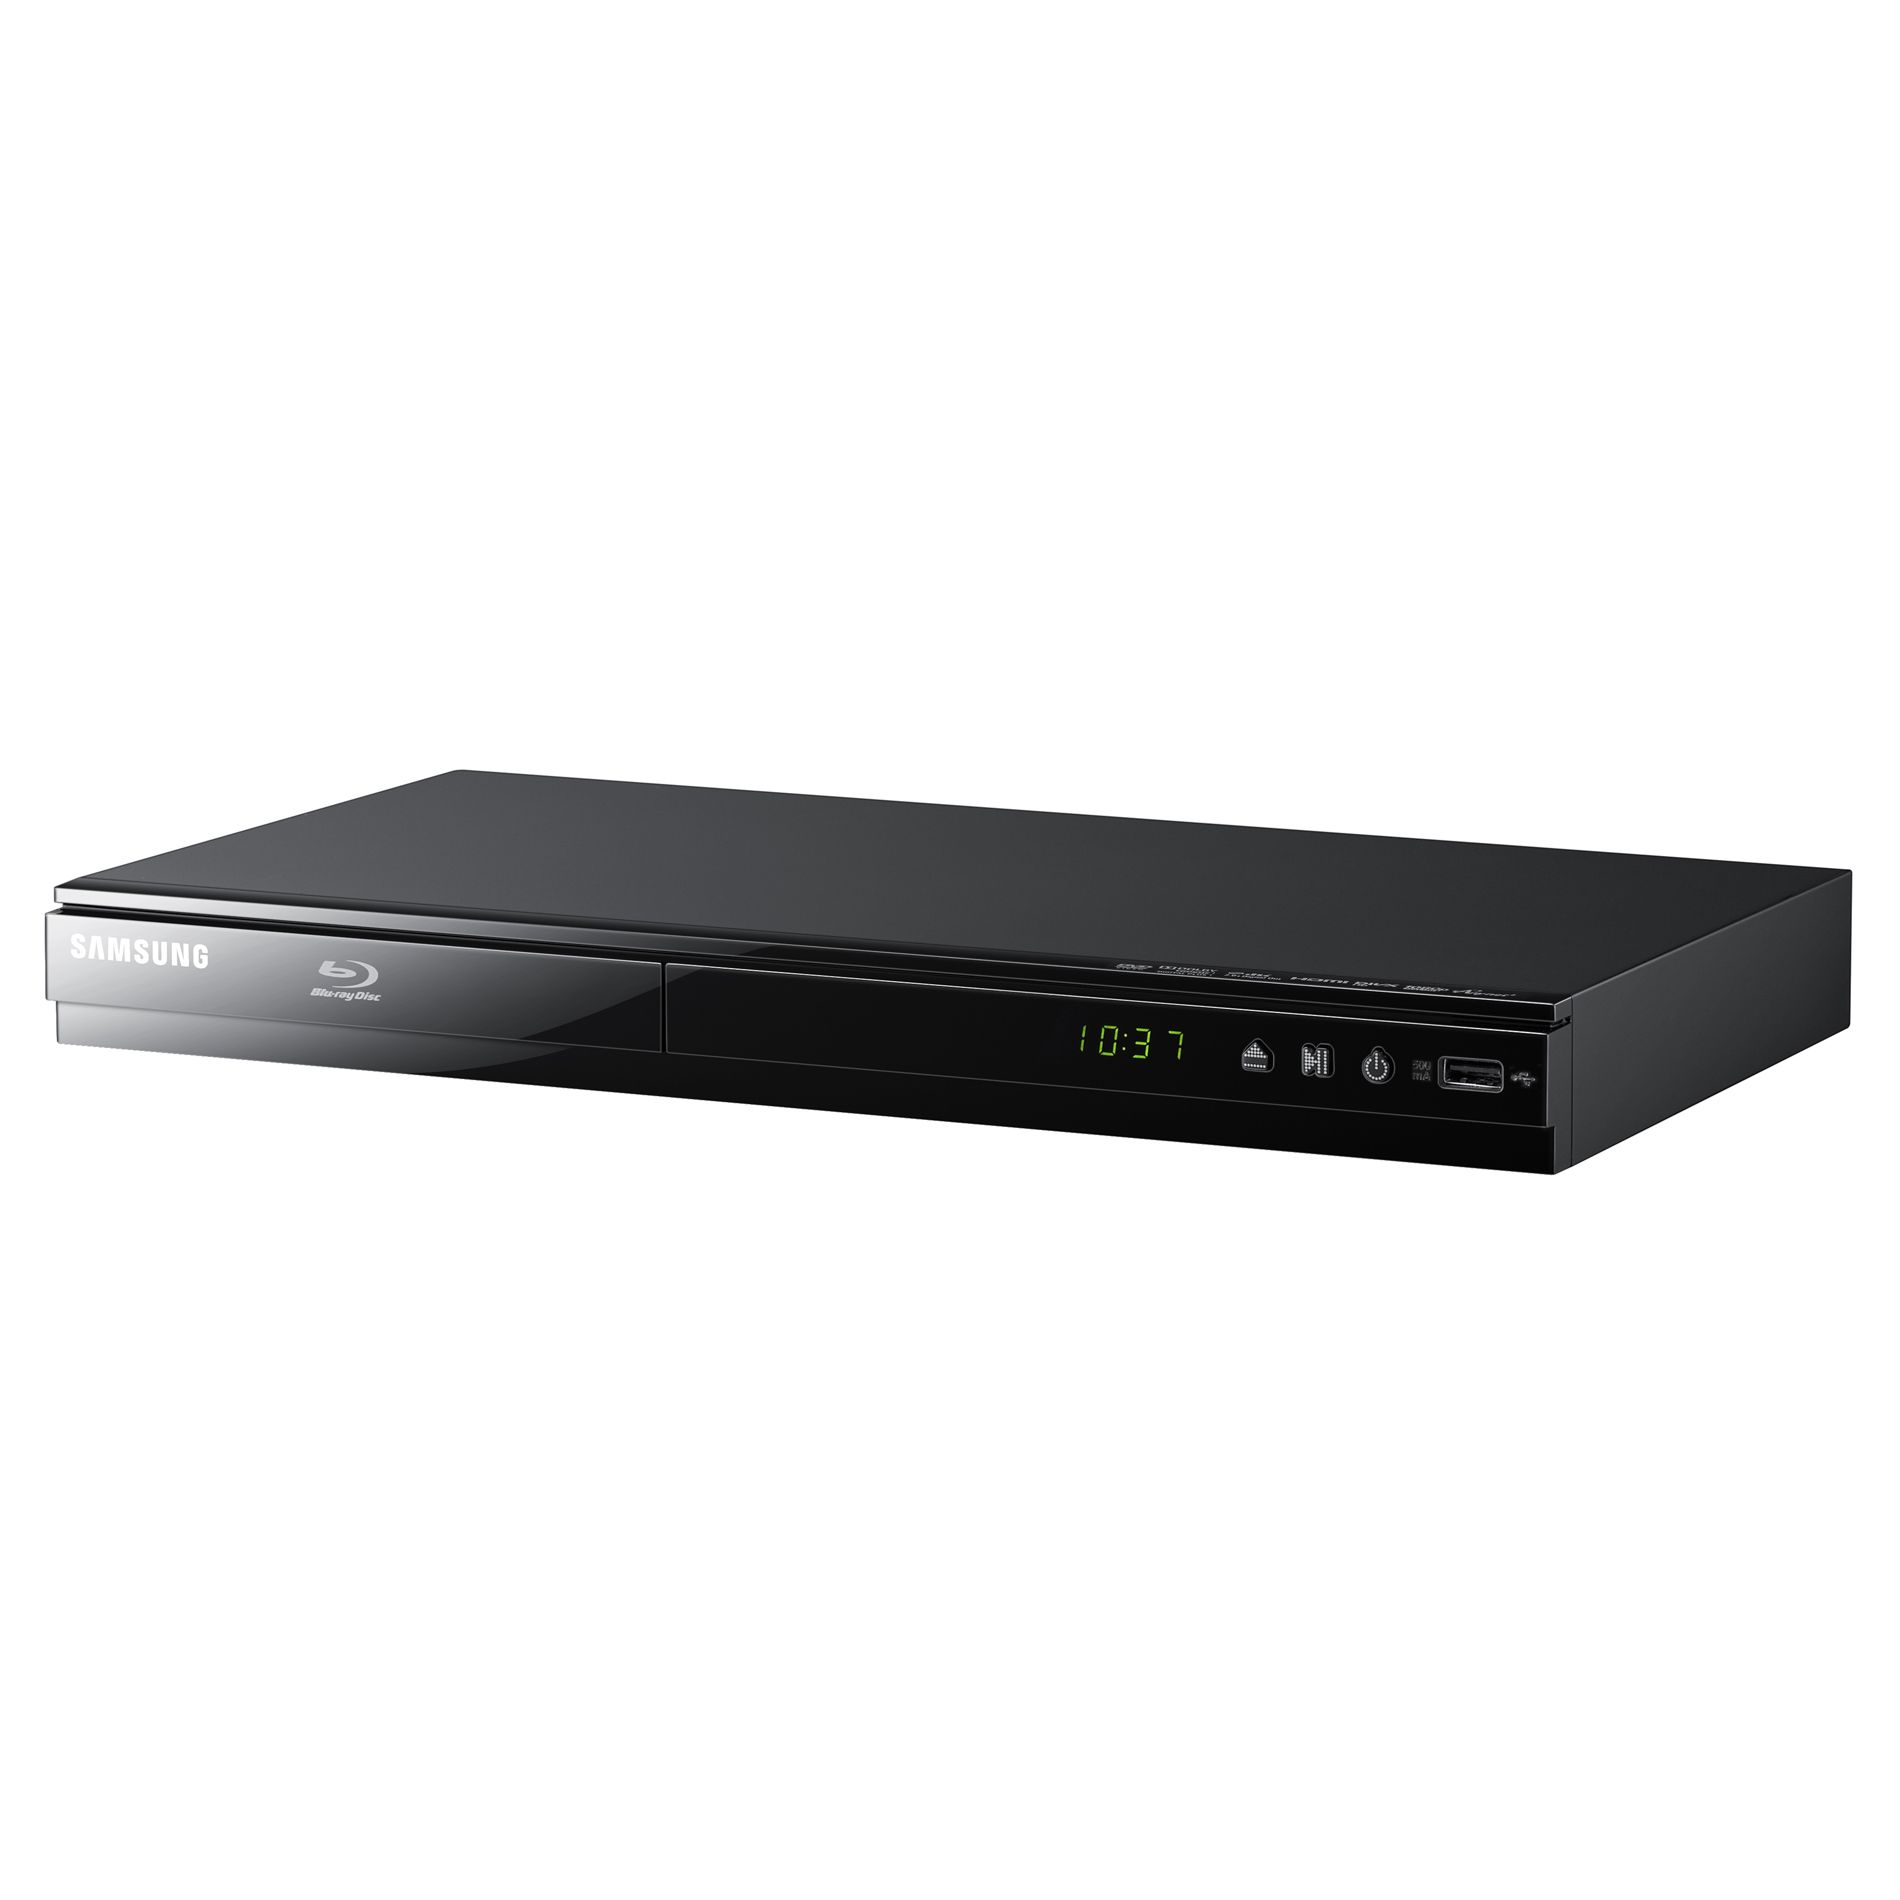 Samsung Blu-ray Disc® Player with Apps Built-in for Streaming BD-E5300